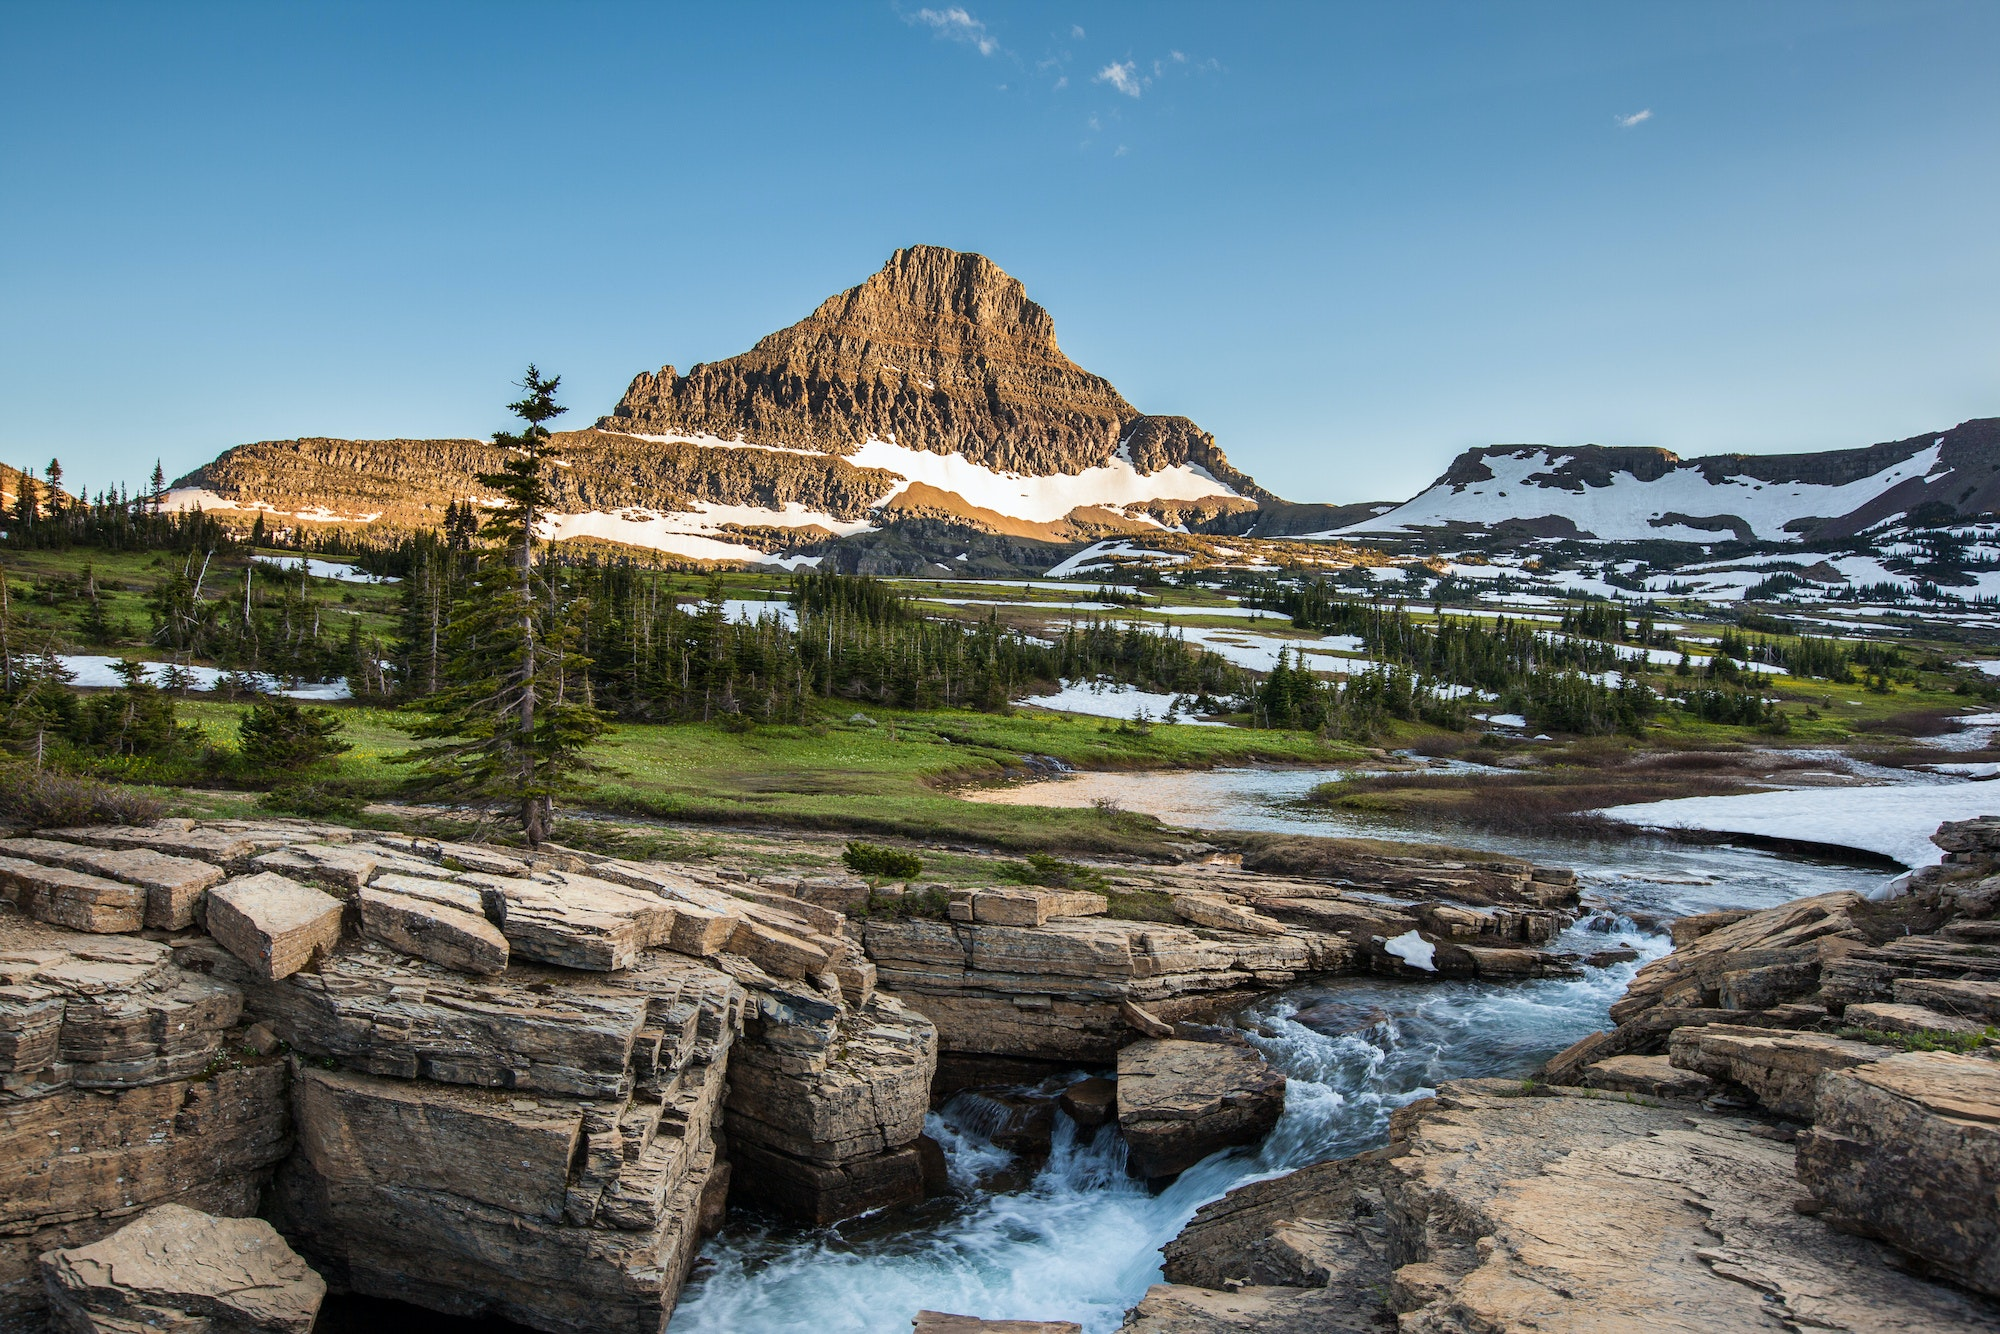 Glacier National Park has over 745 miles of maintained hiking trails.